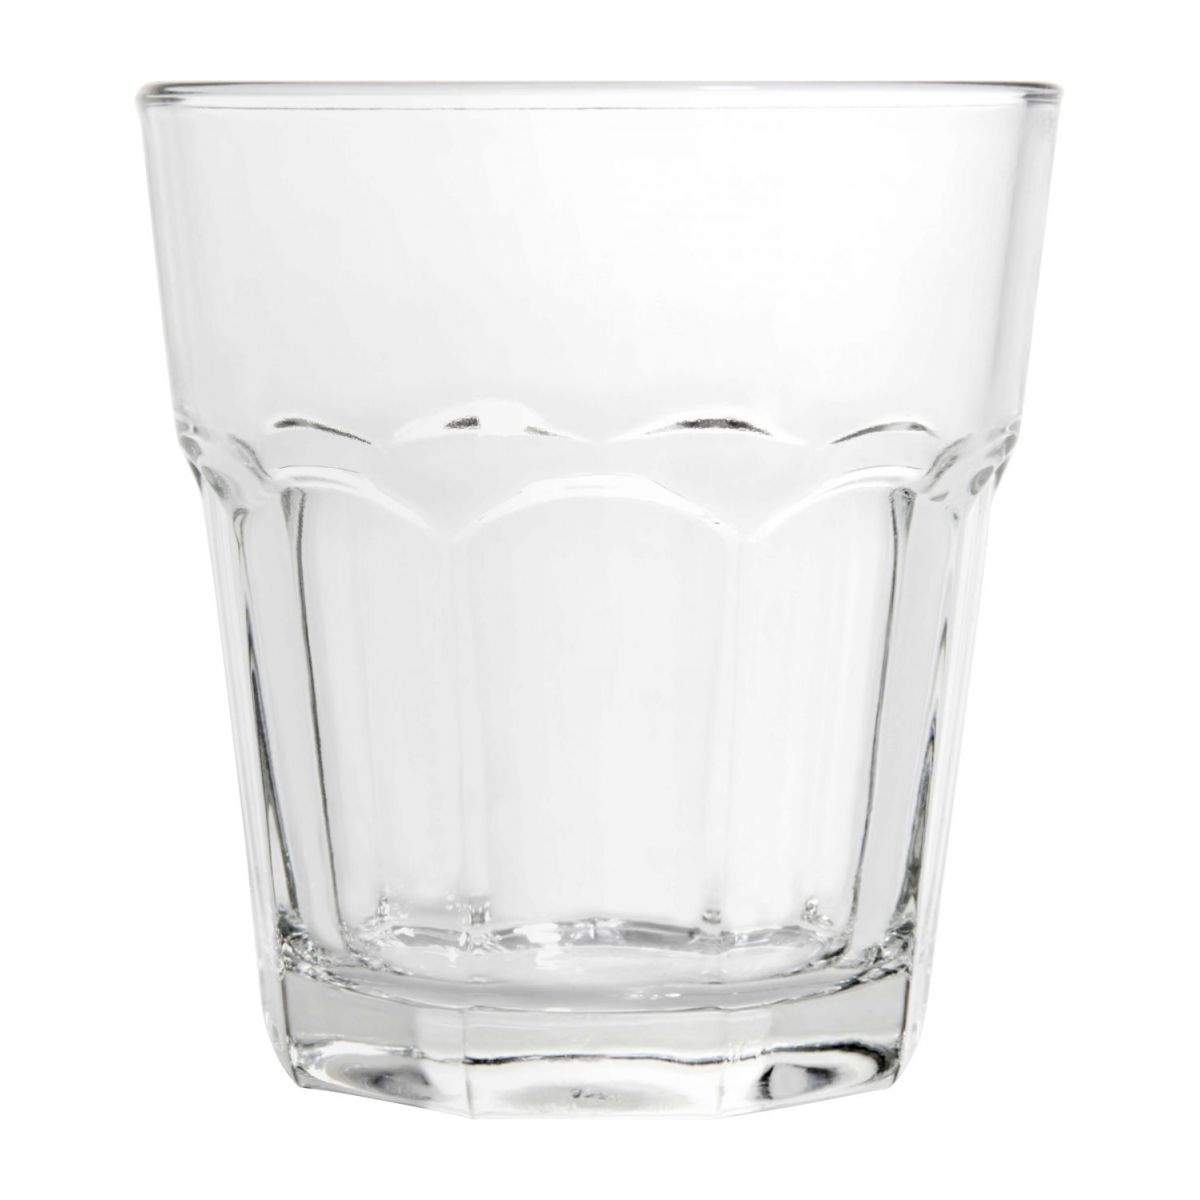 Verre transparent n°3